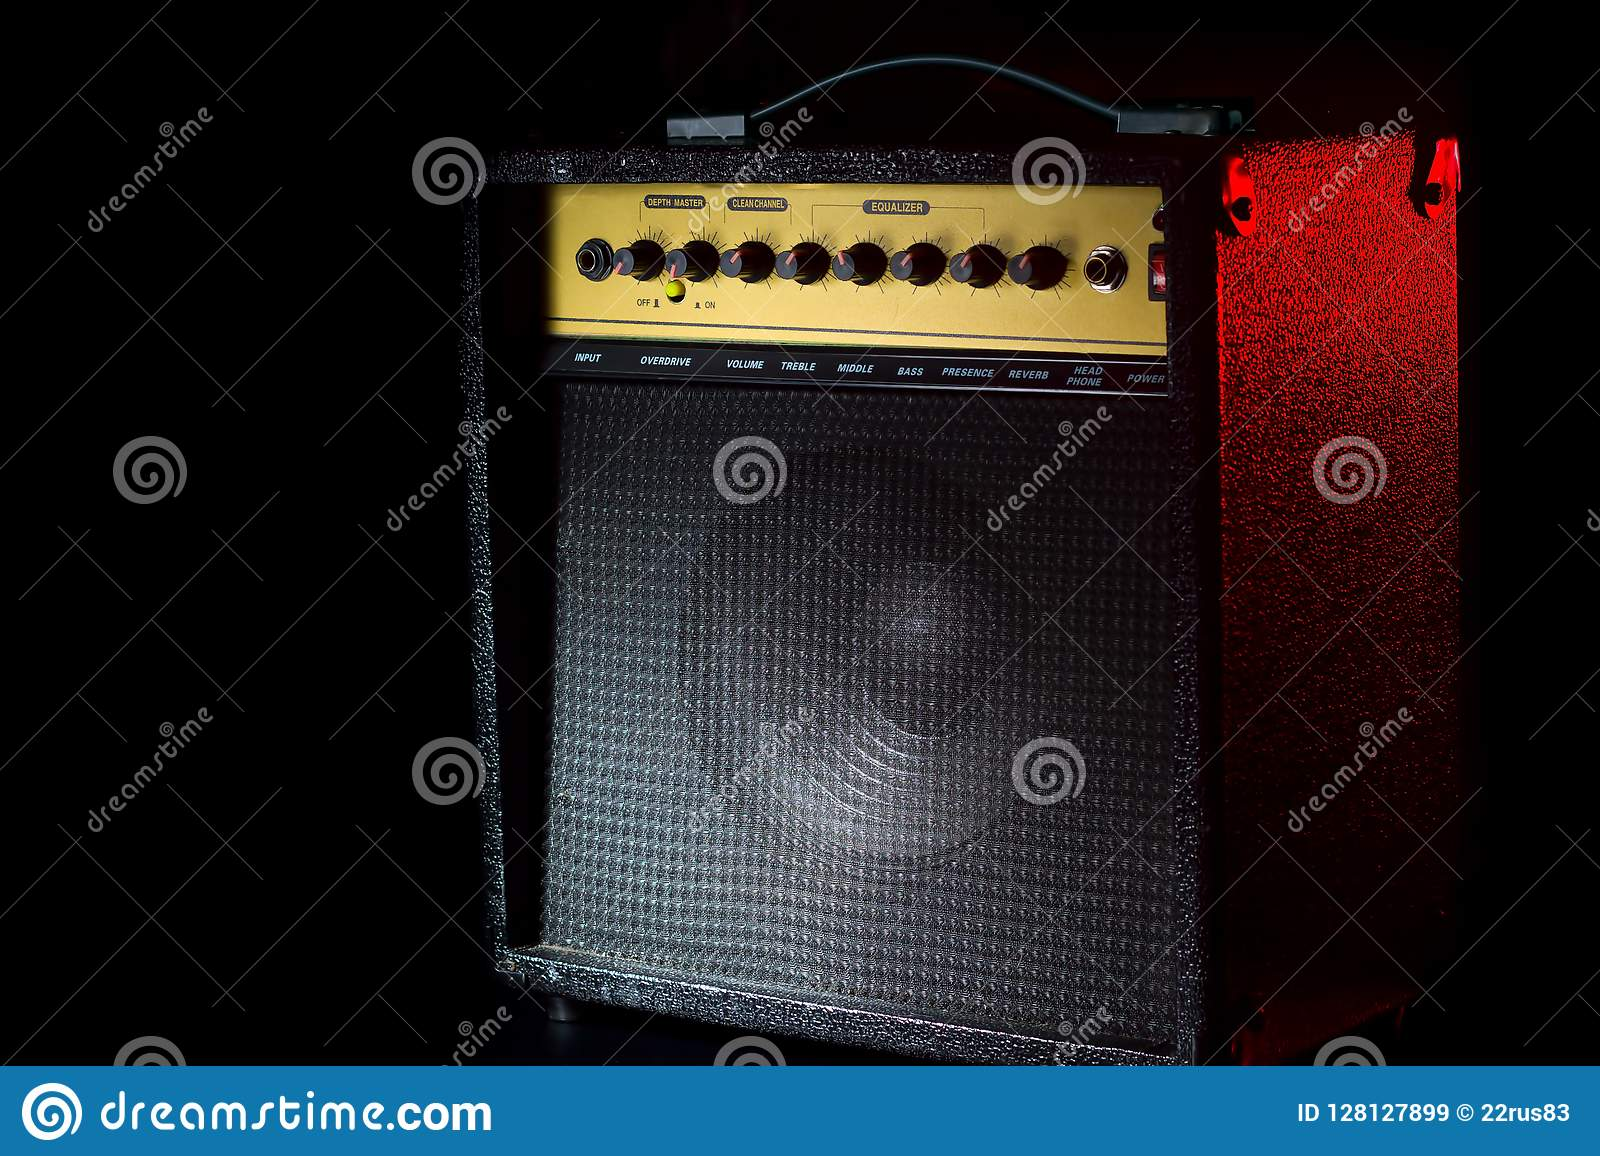 Black guitar amplifier on a black background with a red flash.